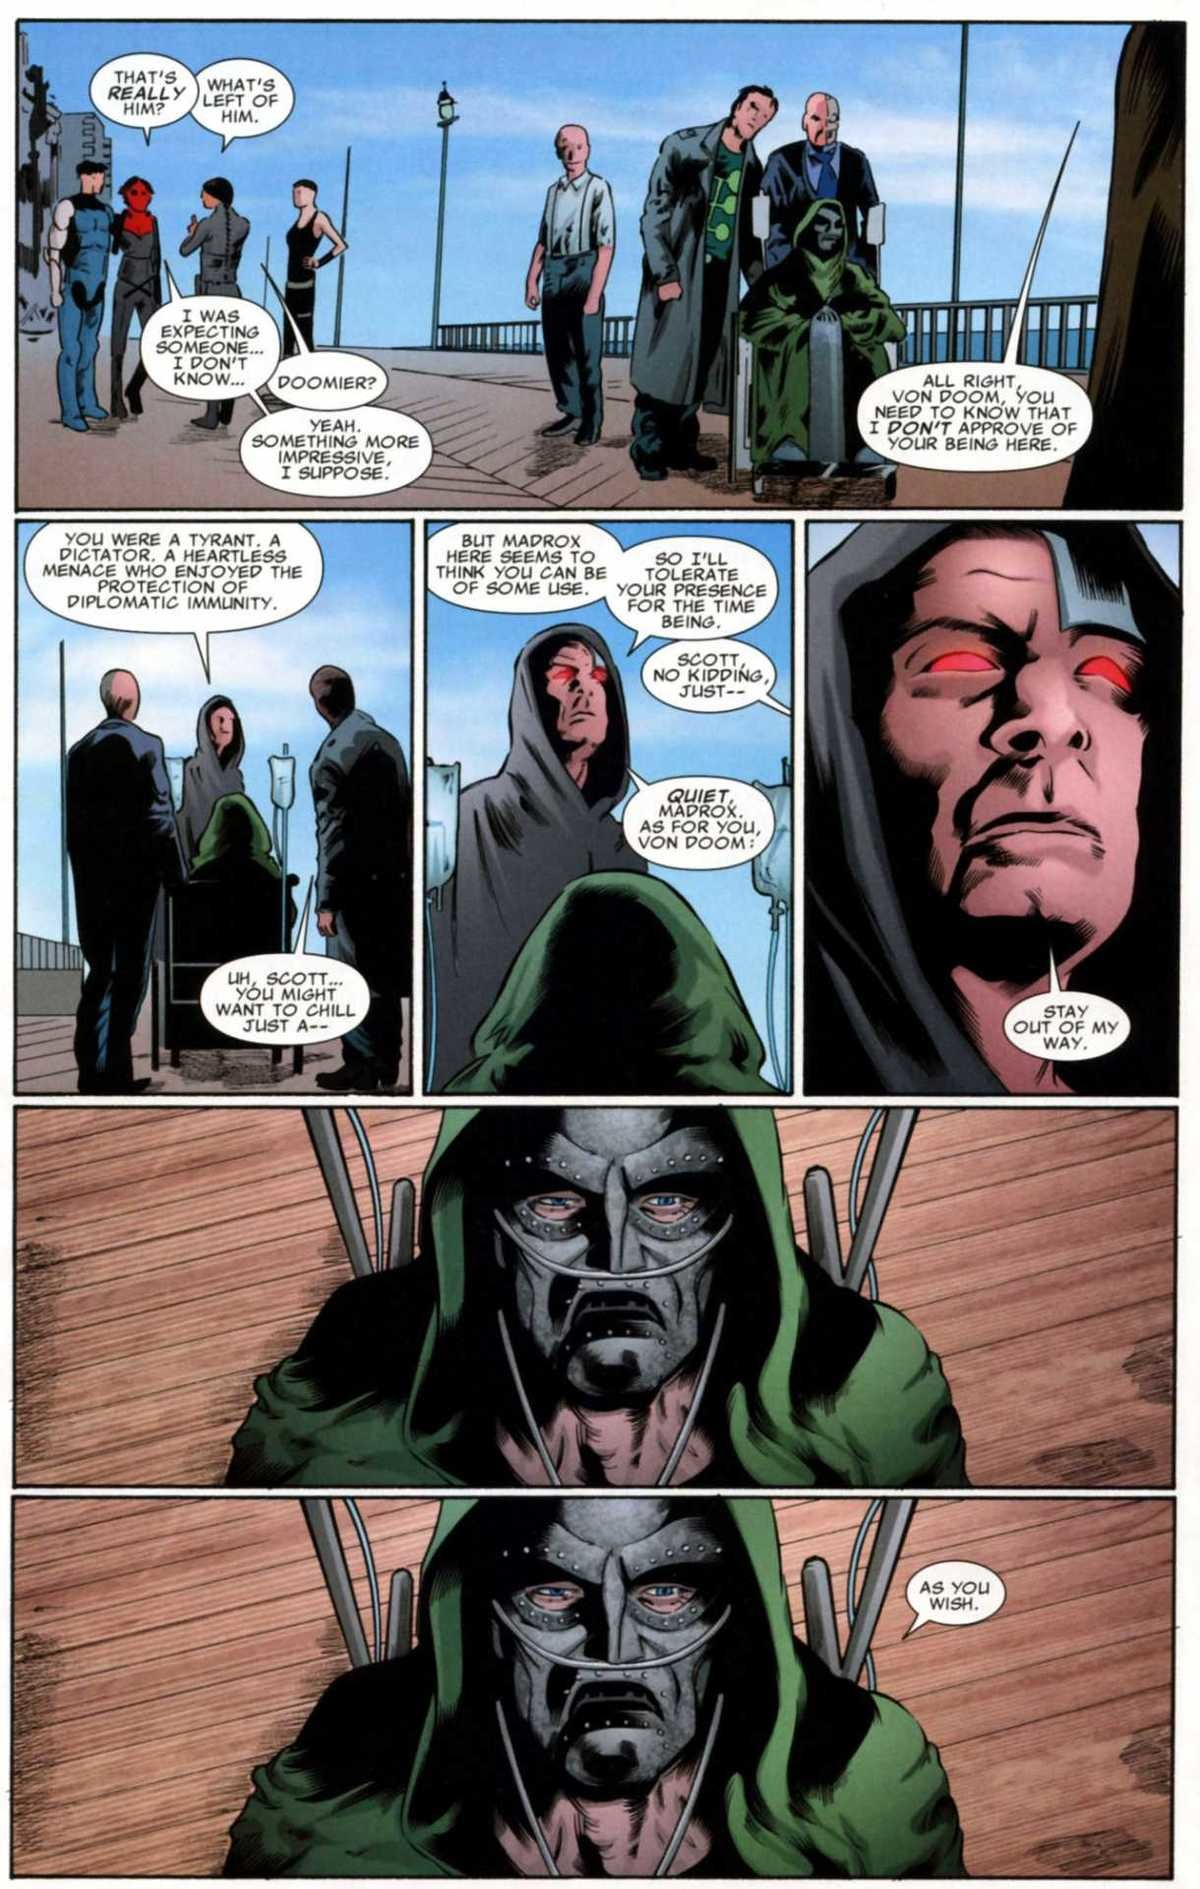 Old Man Doom. .. Best part is I can't tell if there's explosive tech in the gauntlet or he figured out magic at some point. Doom is the best.